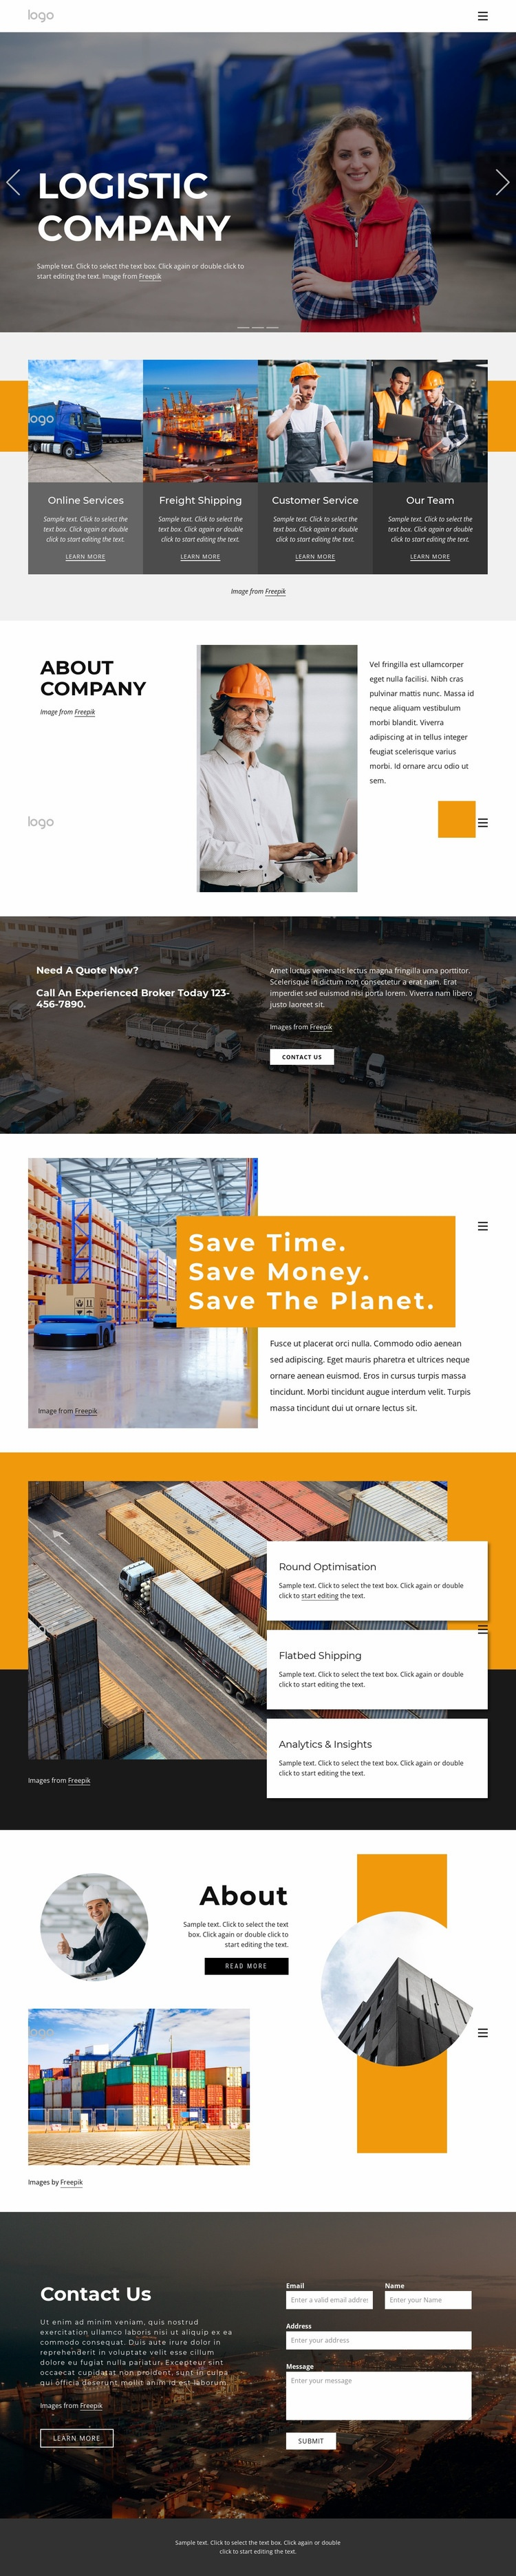 Shipping services and logistics Web Page Designer